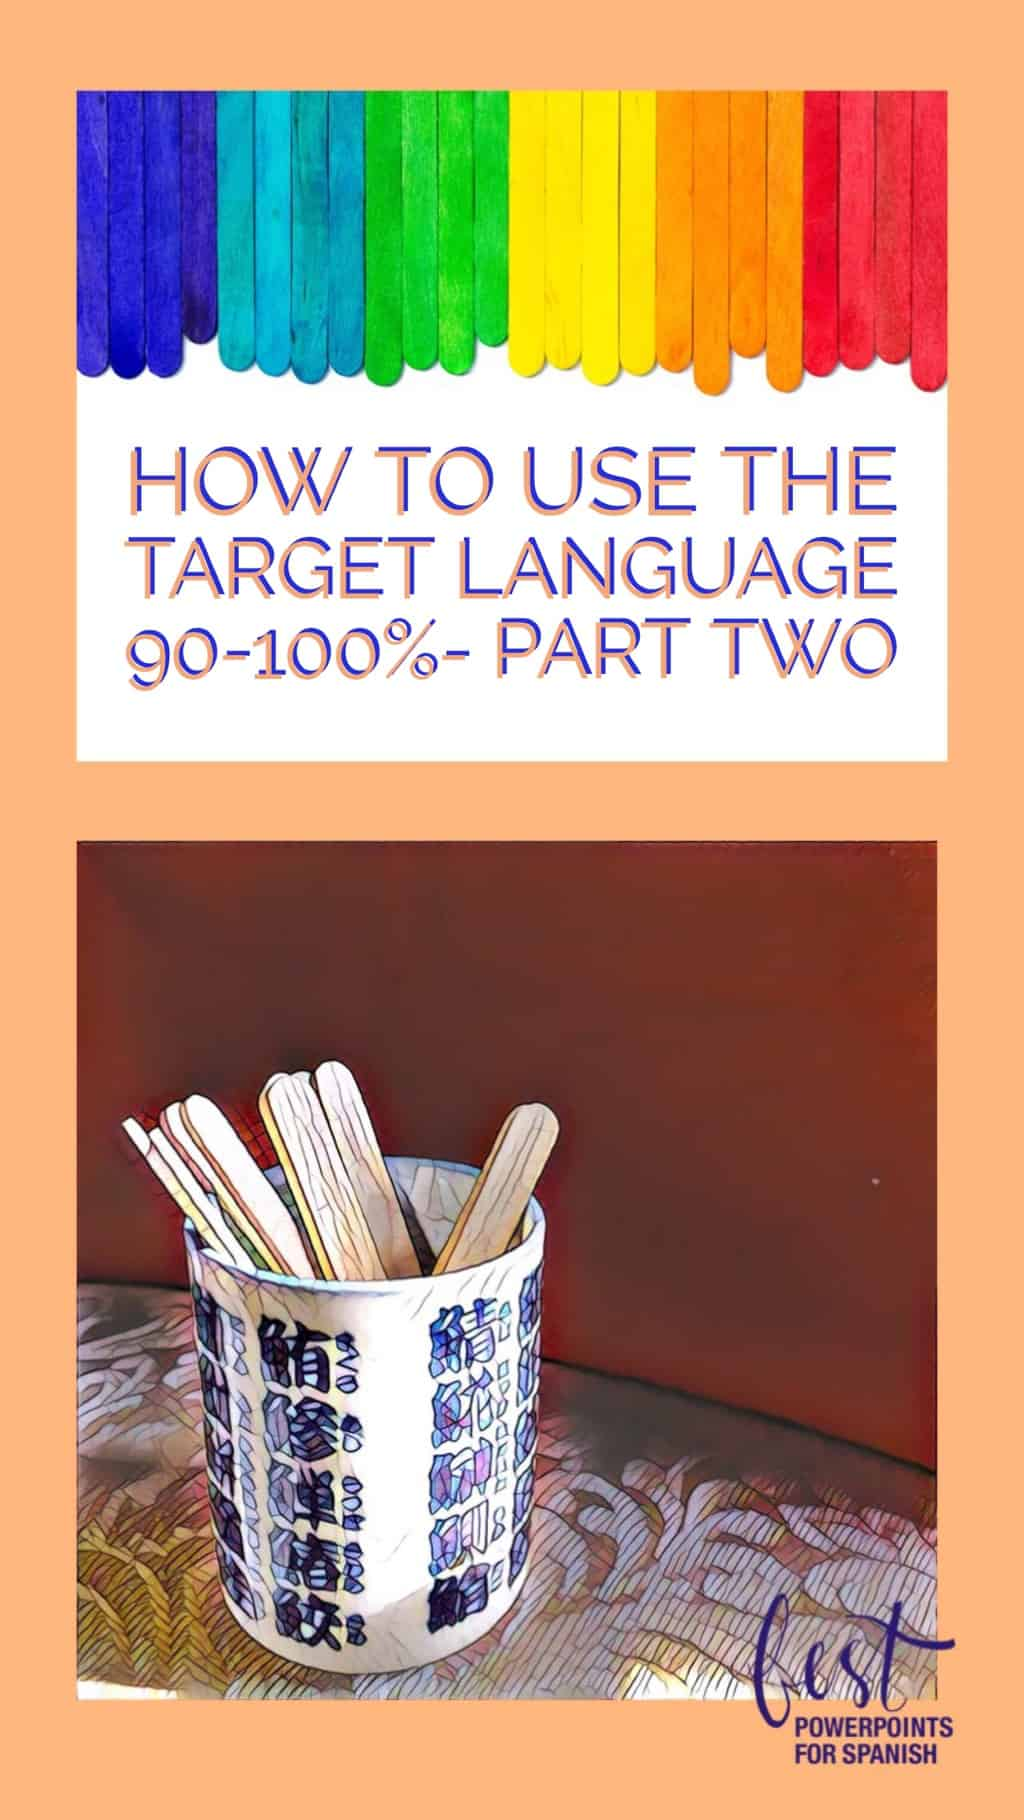 How to Use the Target Language Part Two